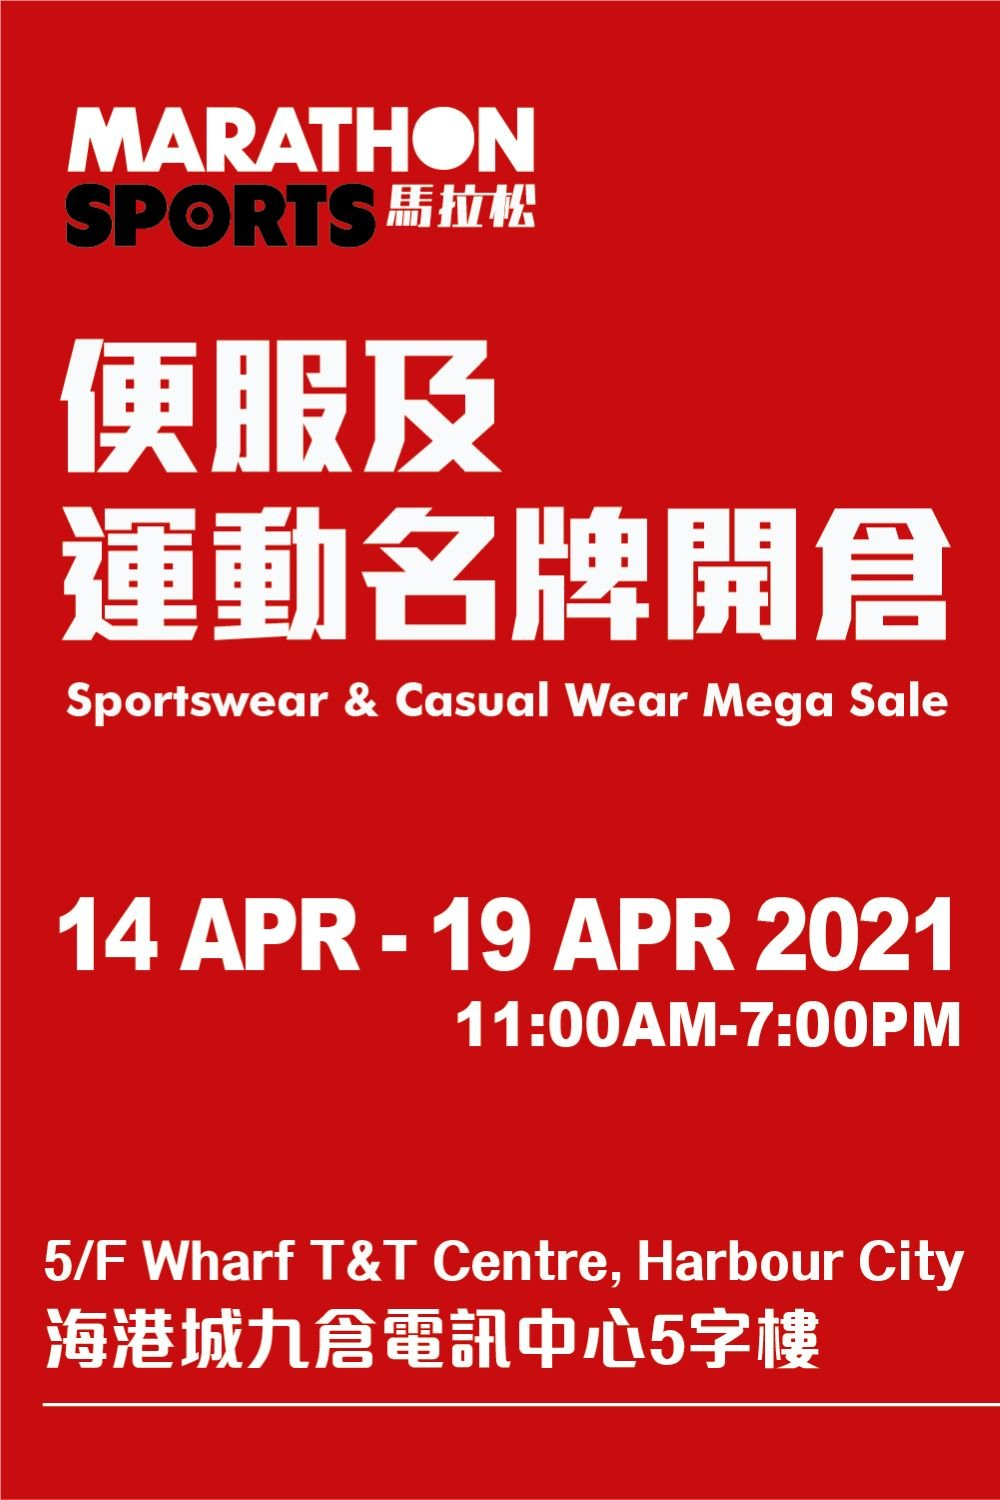 Marathon Sports Mega Sale